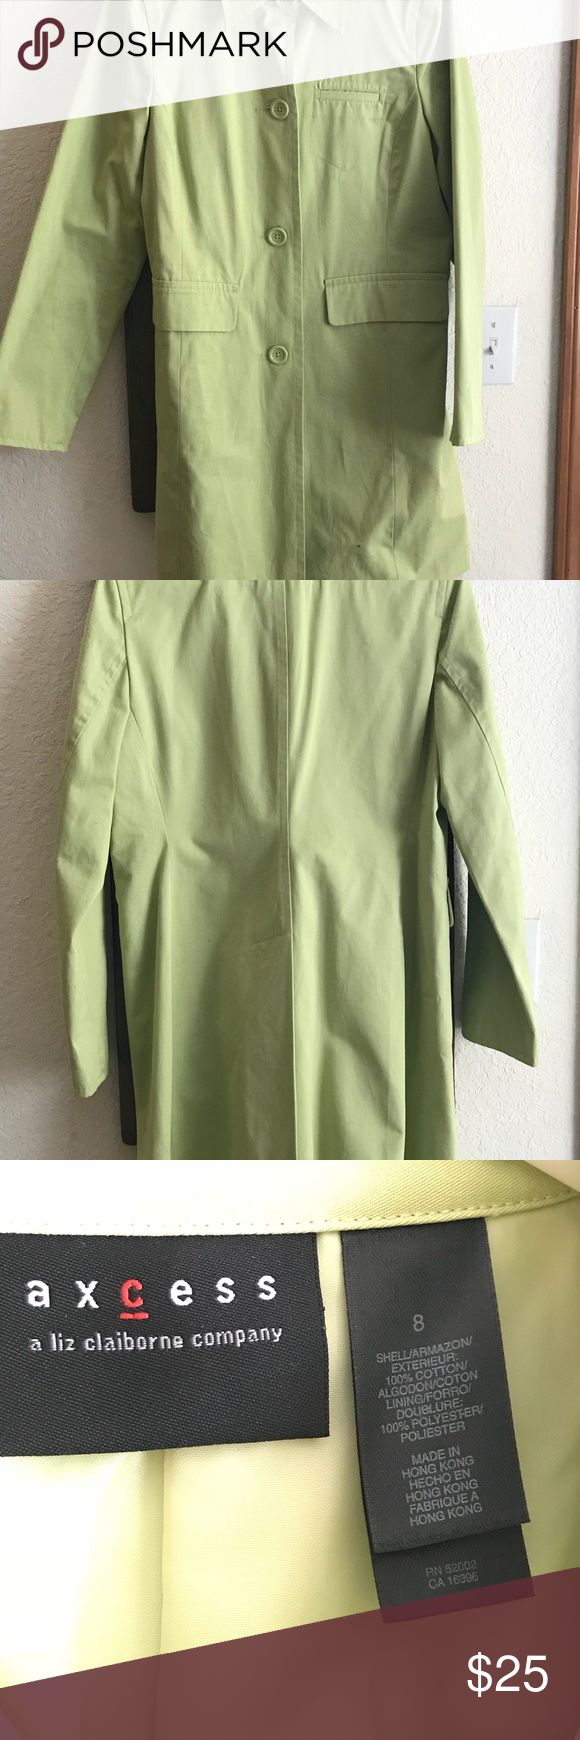 Liz Claiborne dress jacket Gorgeous lime green jacket, perfect for spring    In excellent condition   Only worn a couple of times Liz Claiborne Jackets & Coats Trench Coats